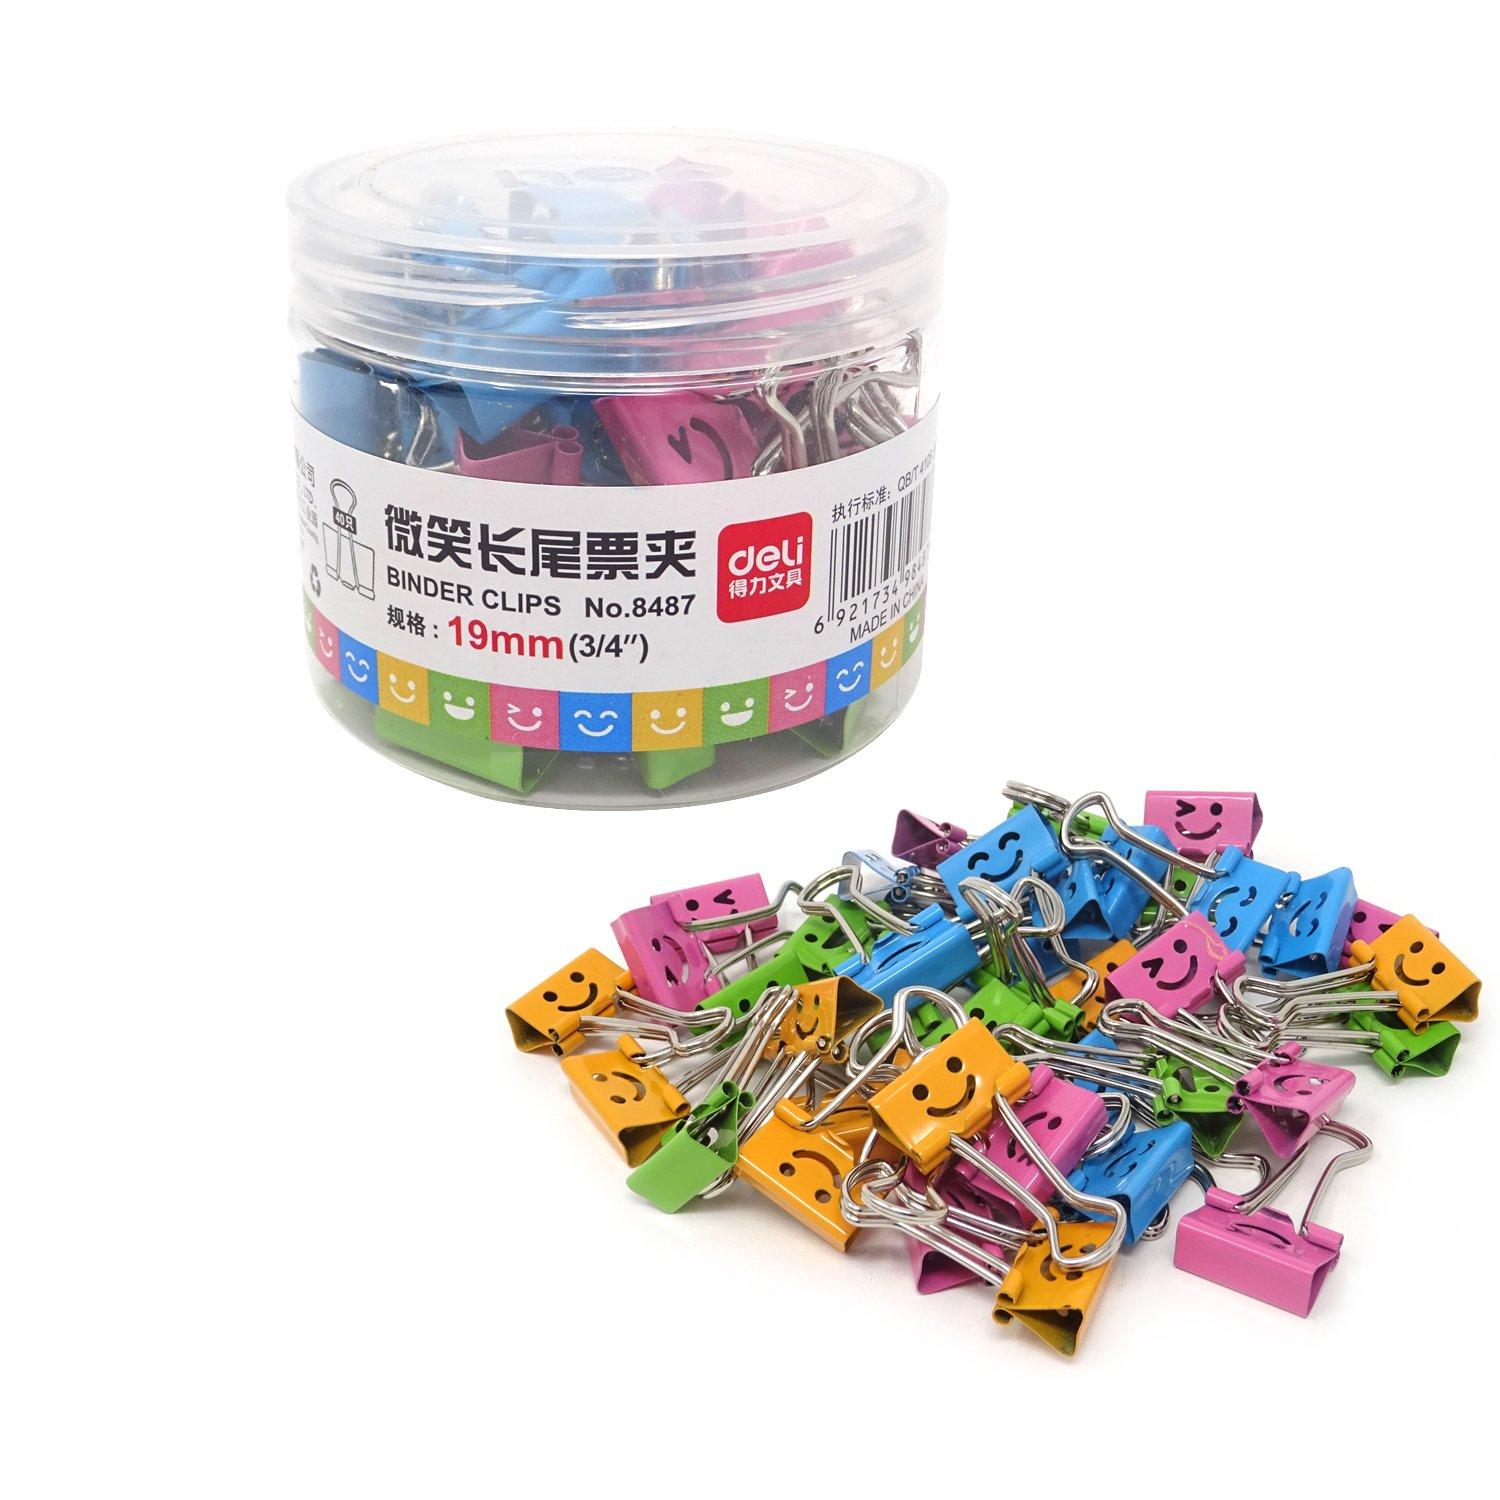 Honbay 40PCS 19mm 3/4inch Wide Lovely Small Size Smiling Style Metal Binder Clips Paper Clips Clamps with a Plastic Box